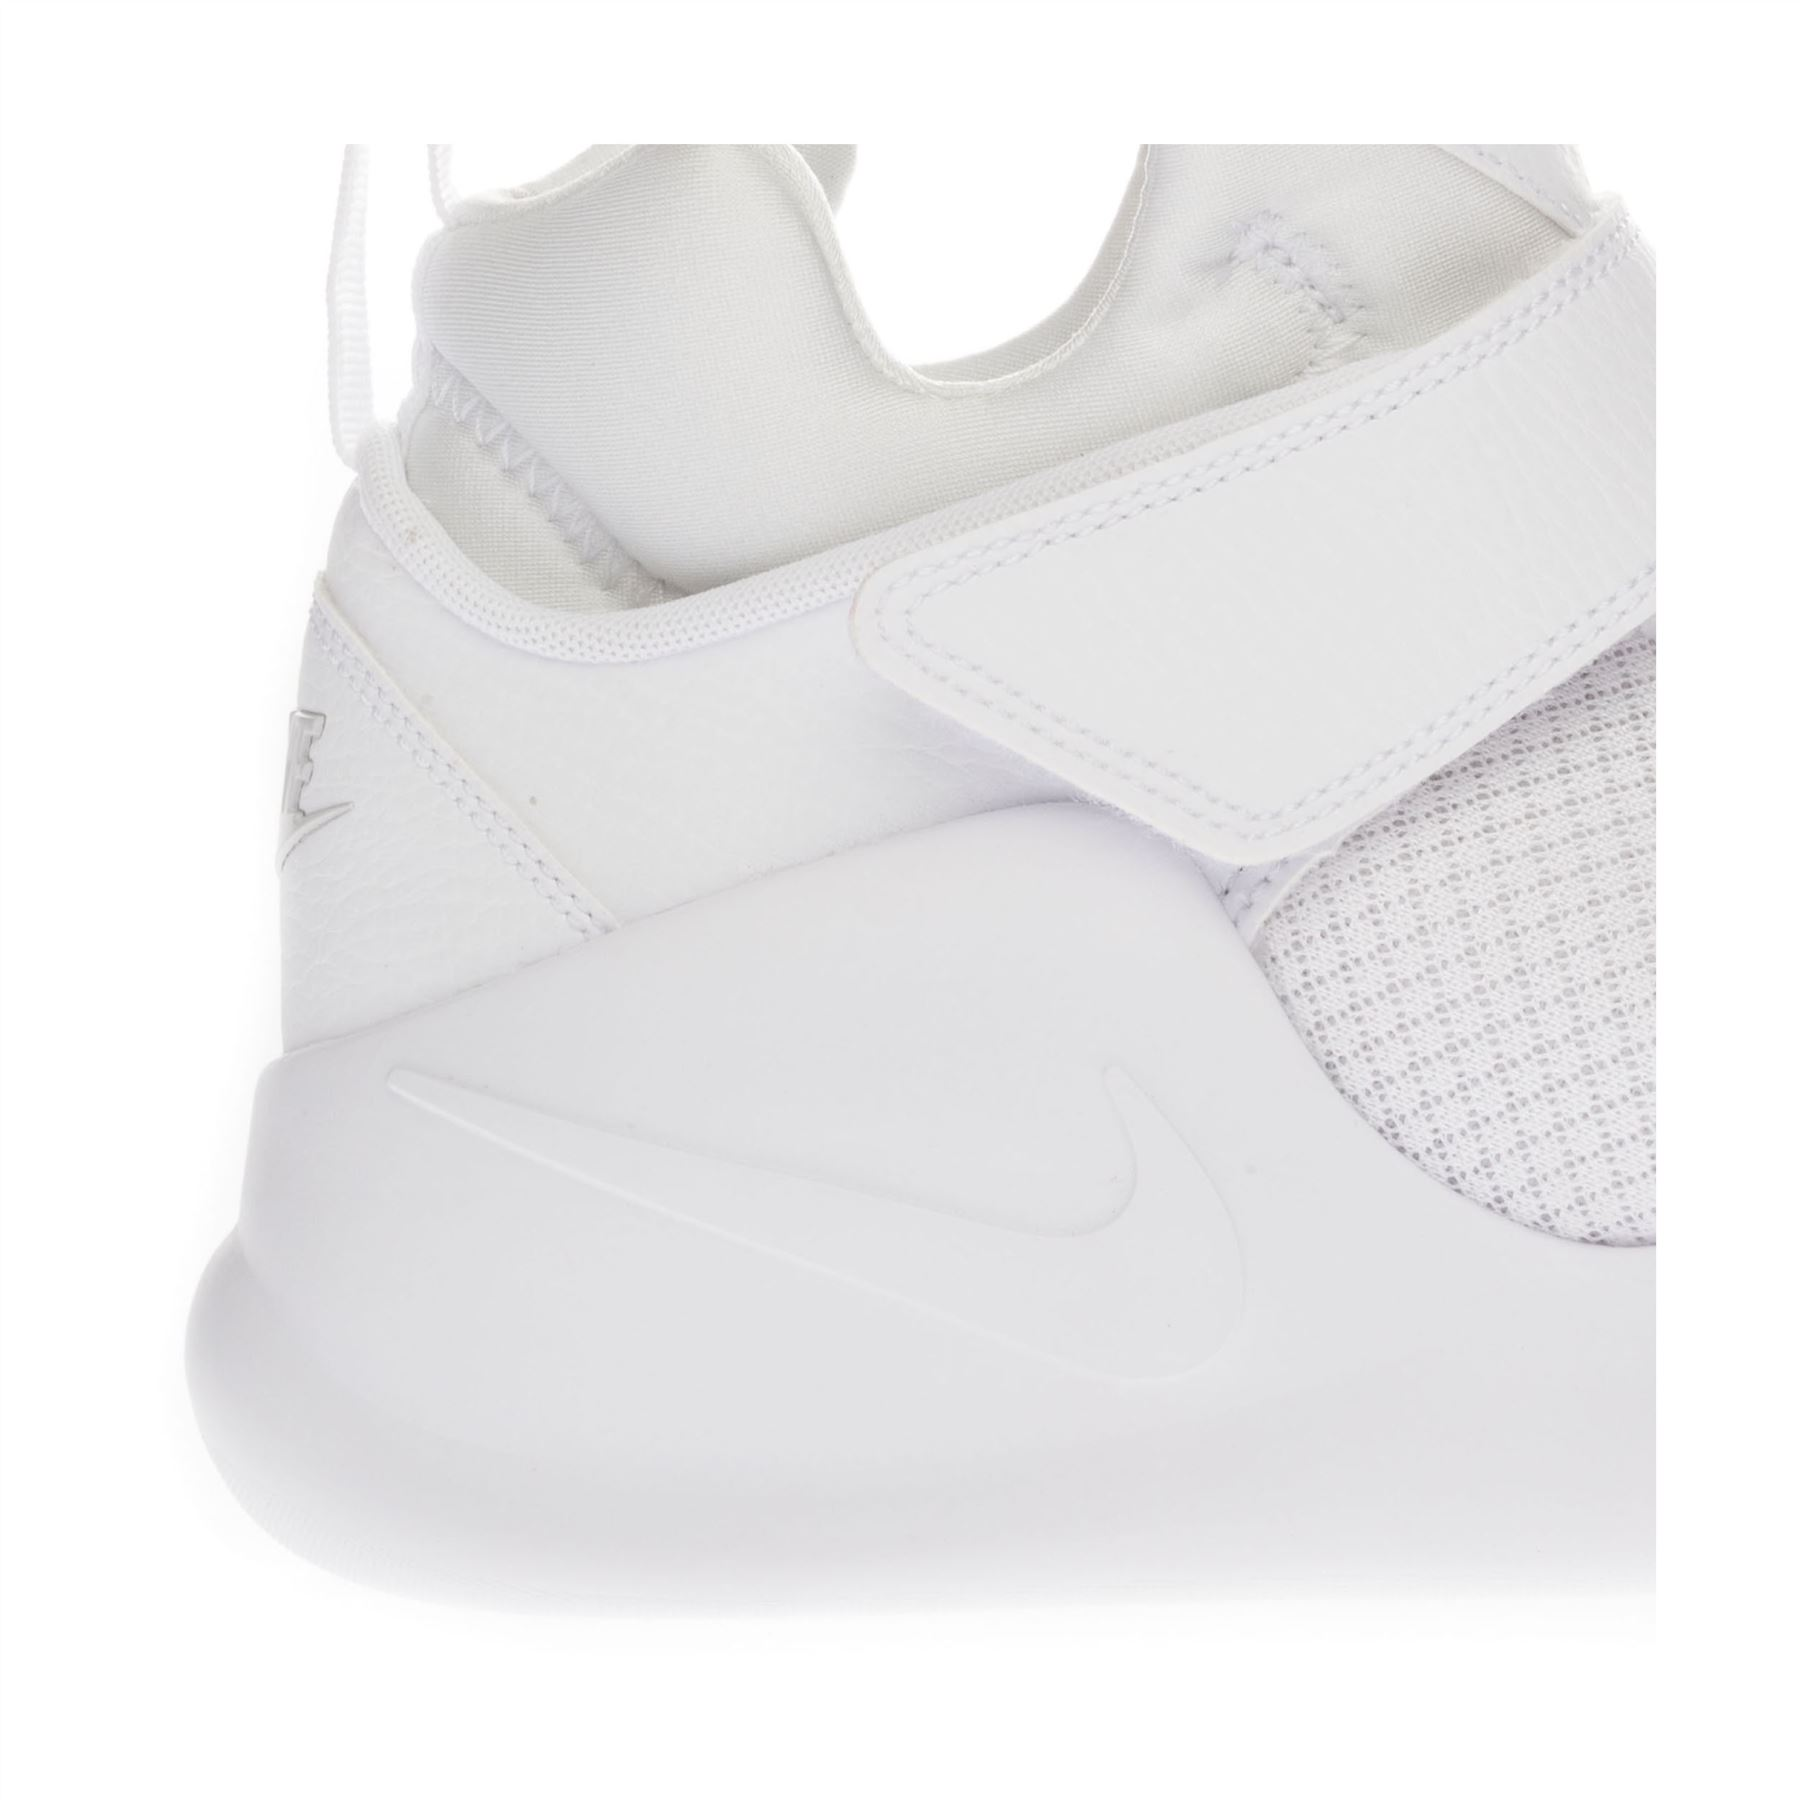 huge discount 3b0c2 724a3 Nike-Men-039-s-Kwazi-Hi-Top-Active-